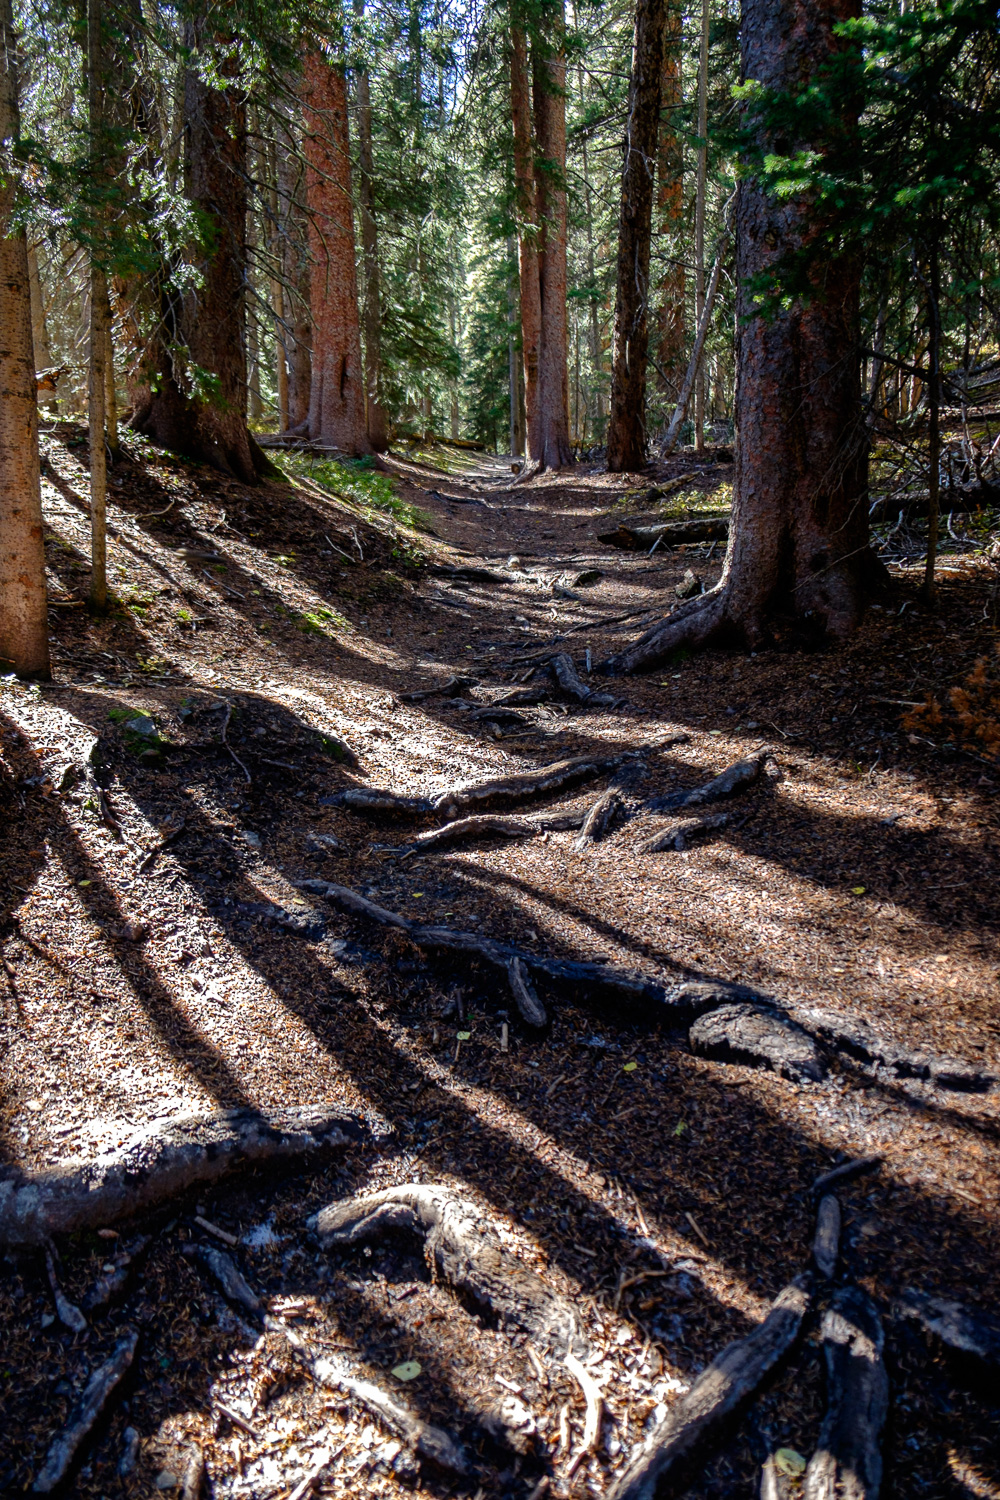 The root covered trail in dense forest